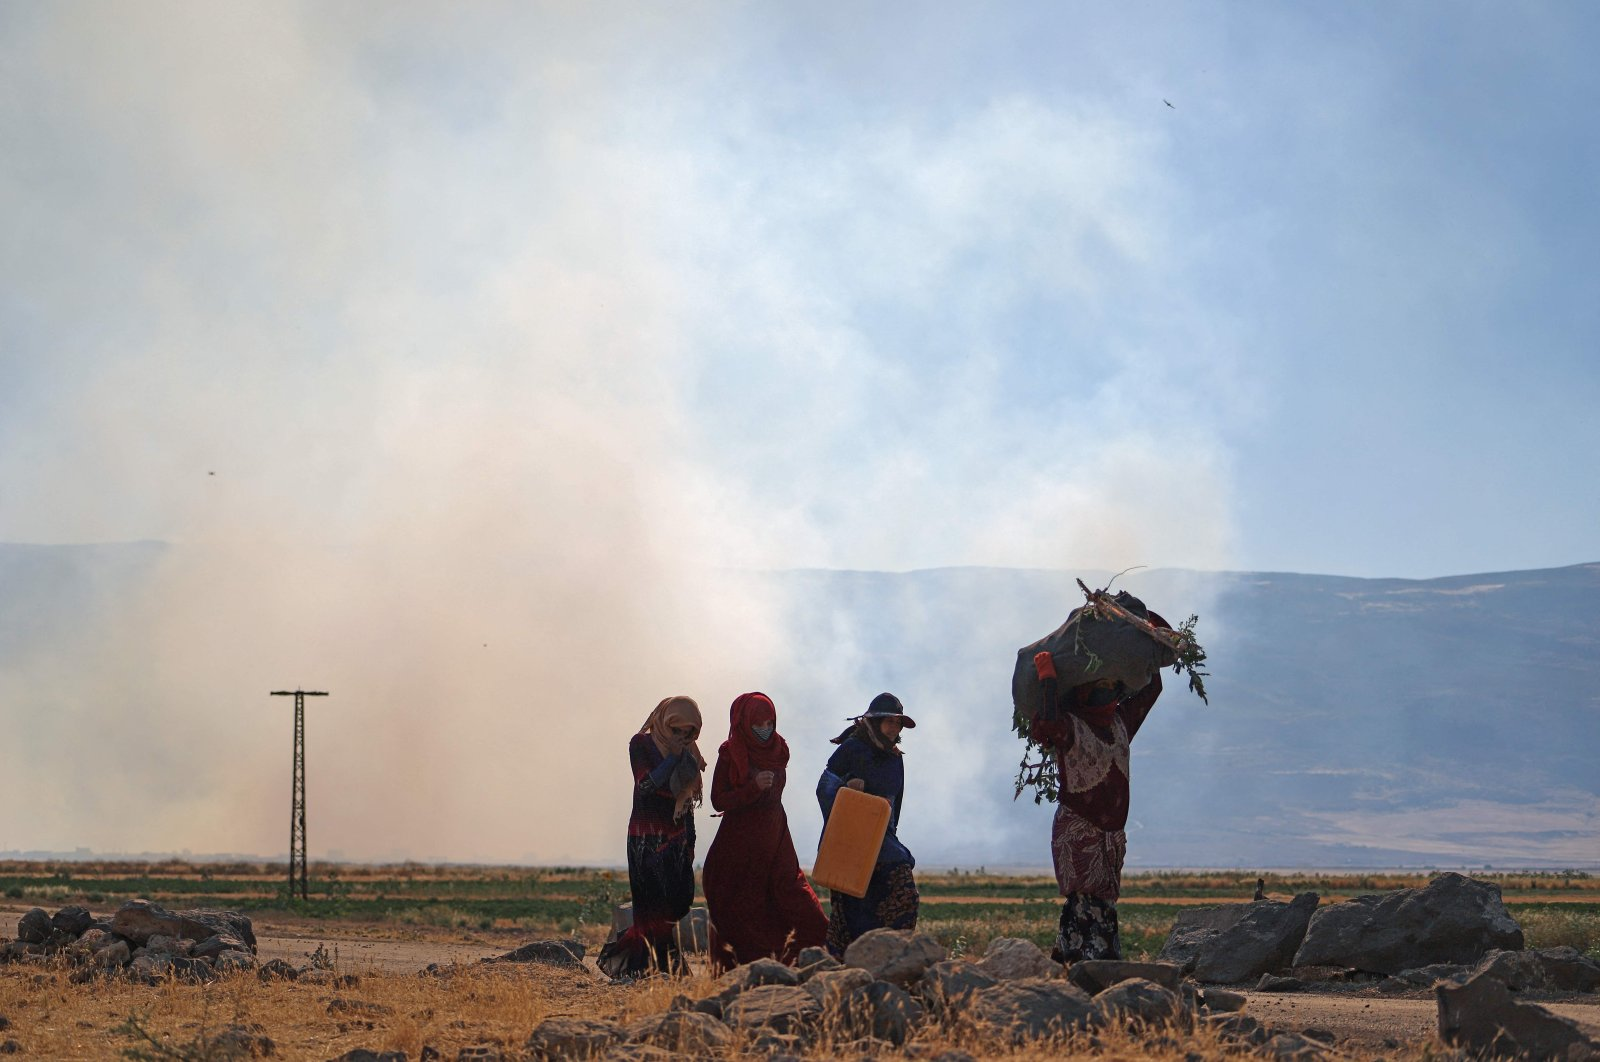 Syrian women walk by billowing smoke following a reported pro-Assad regime bombardment, near the village of al-Ziyarah in the agricultural al-Ghab plain of Hama province, Syria, June 6, 2021. (AFP Photo)